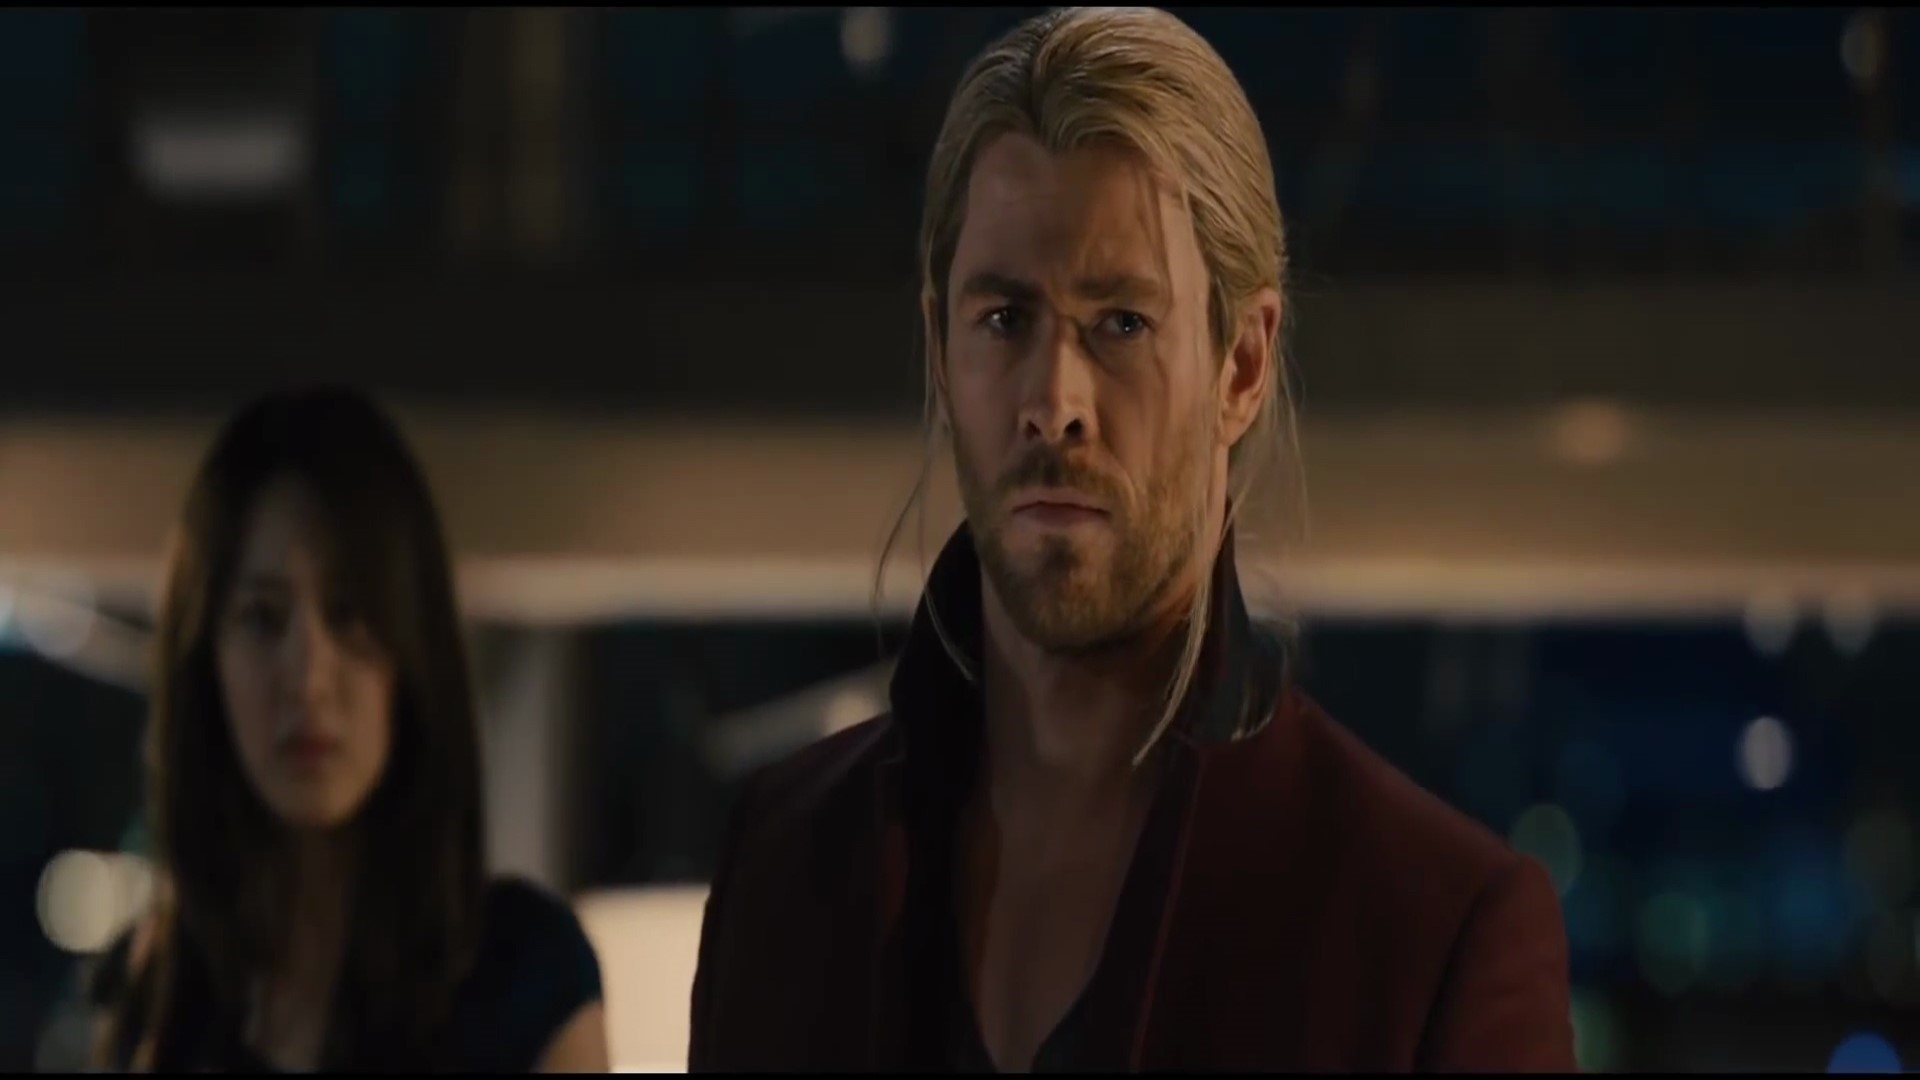 Chris Hemsworth as Thor in New Hollywood Movie The 1920x1080